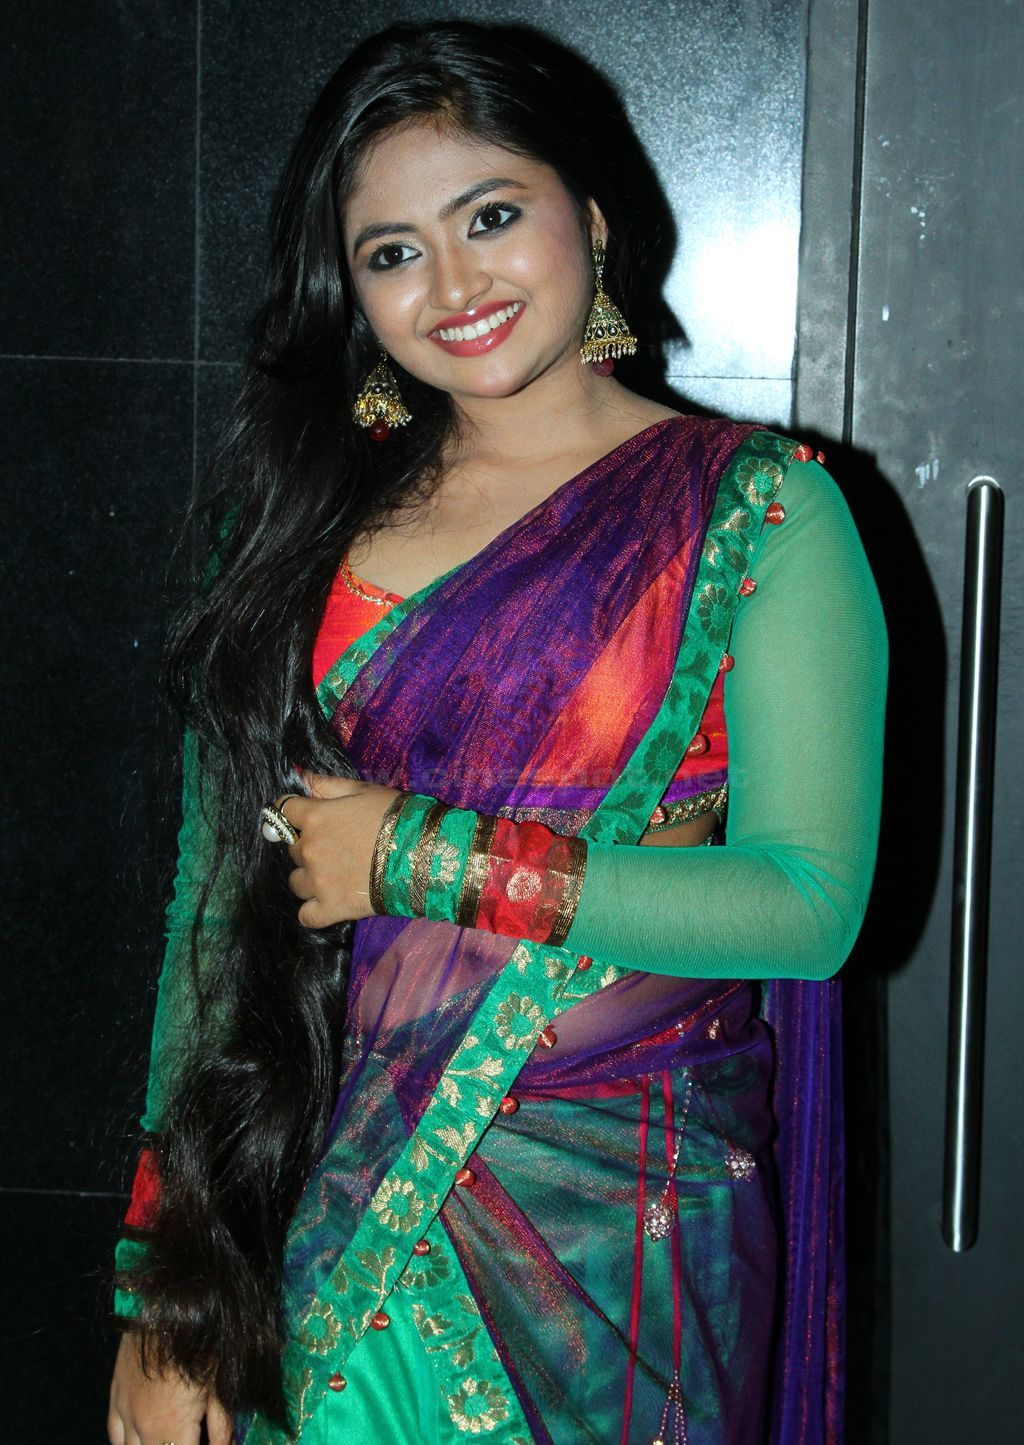 Malayalam Actress Hot Navel Show In Transparent Saree Jollywollywood Com Movies Gossips Trends Wallpapers Videos Sports Stars Trailers